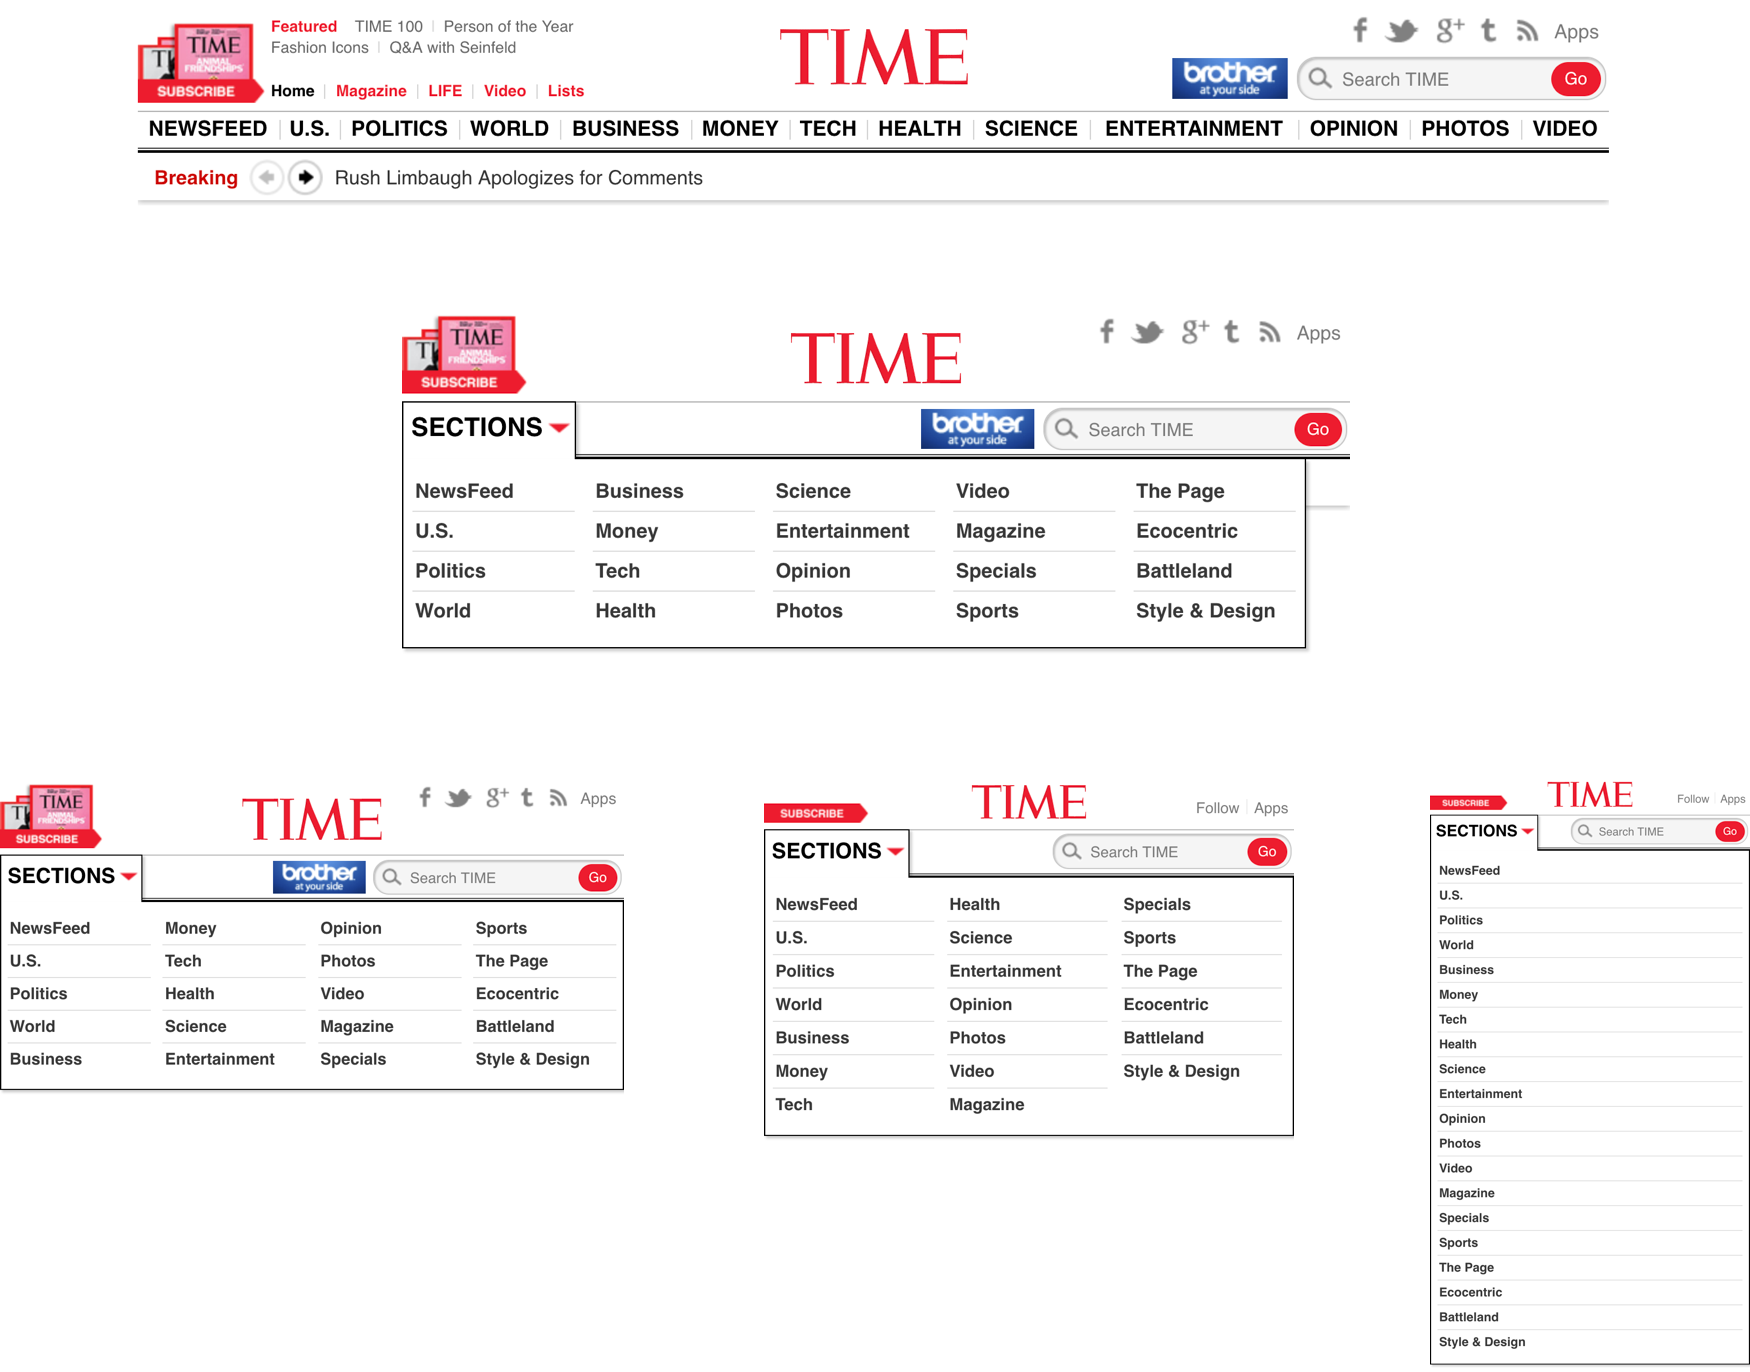 an image of TIME's header menu design at various responsive breakpoints